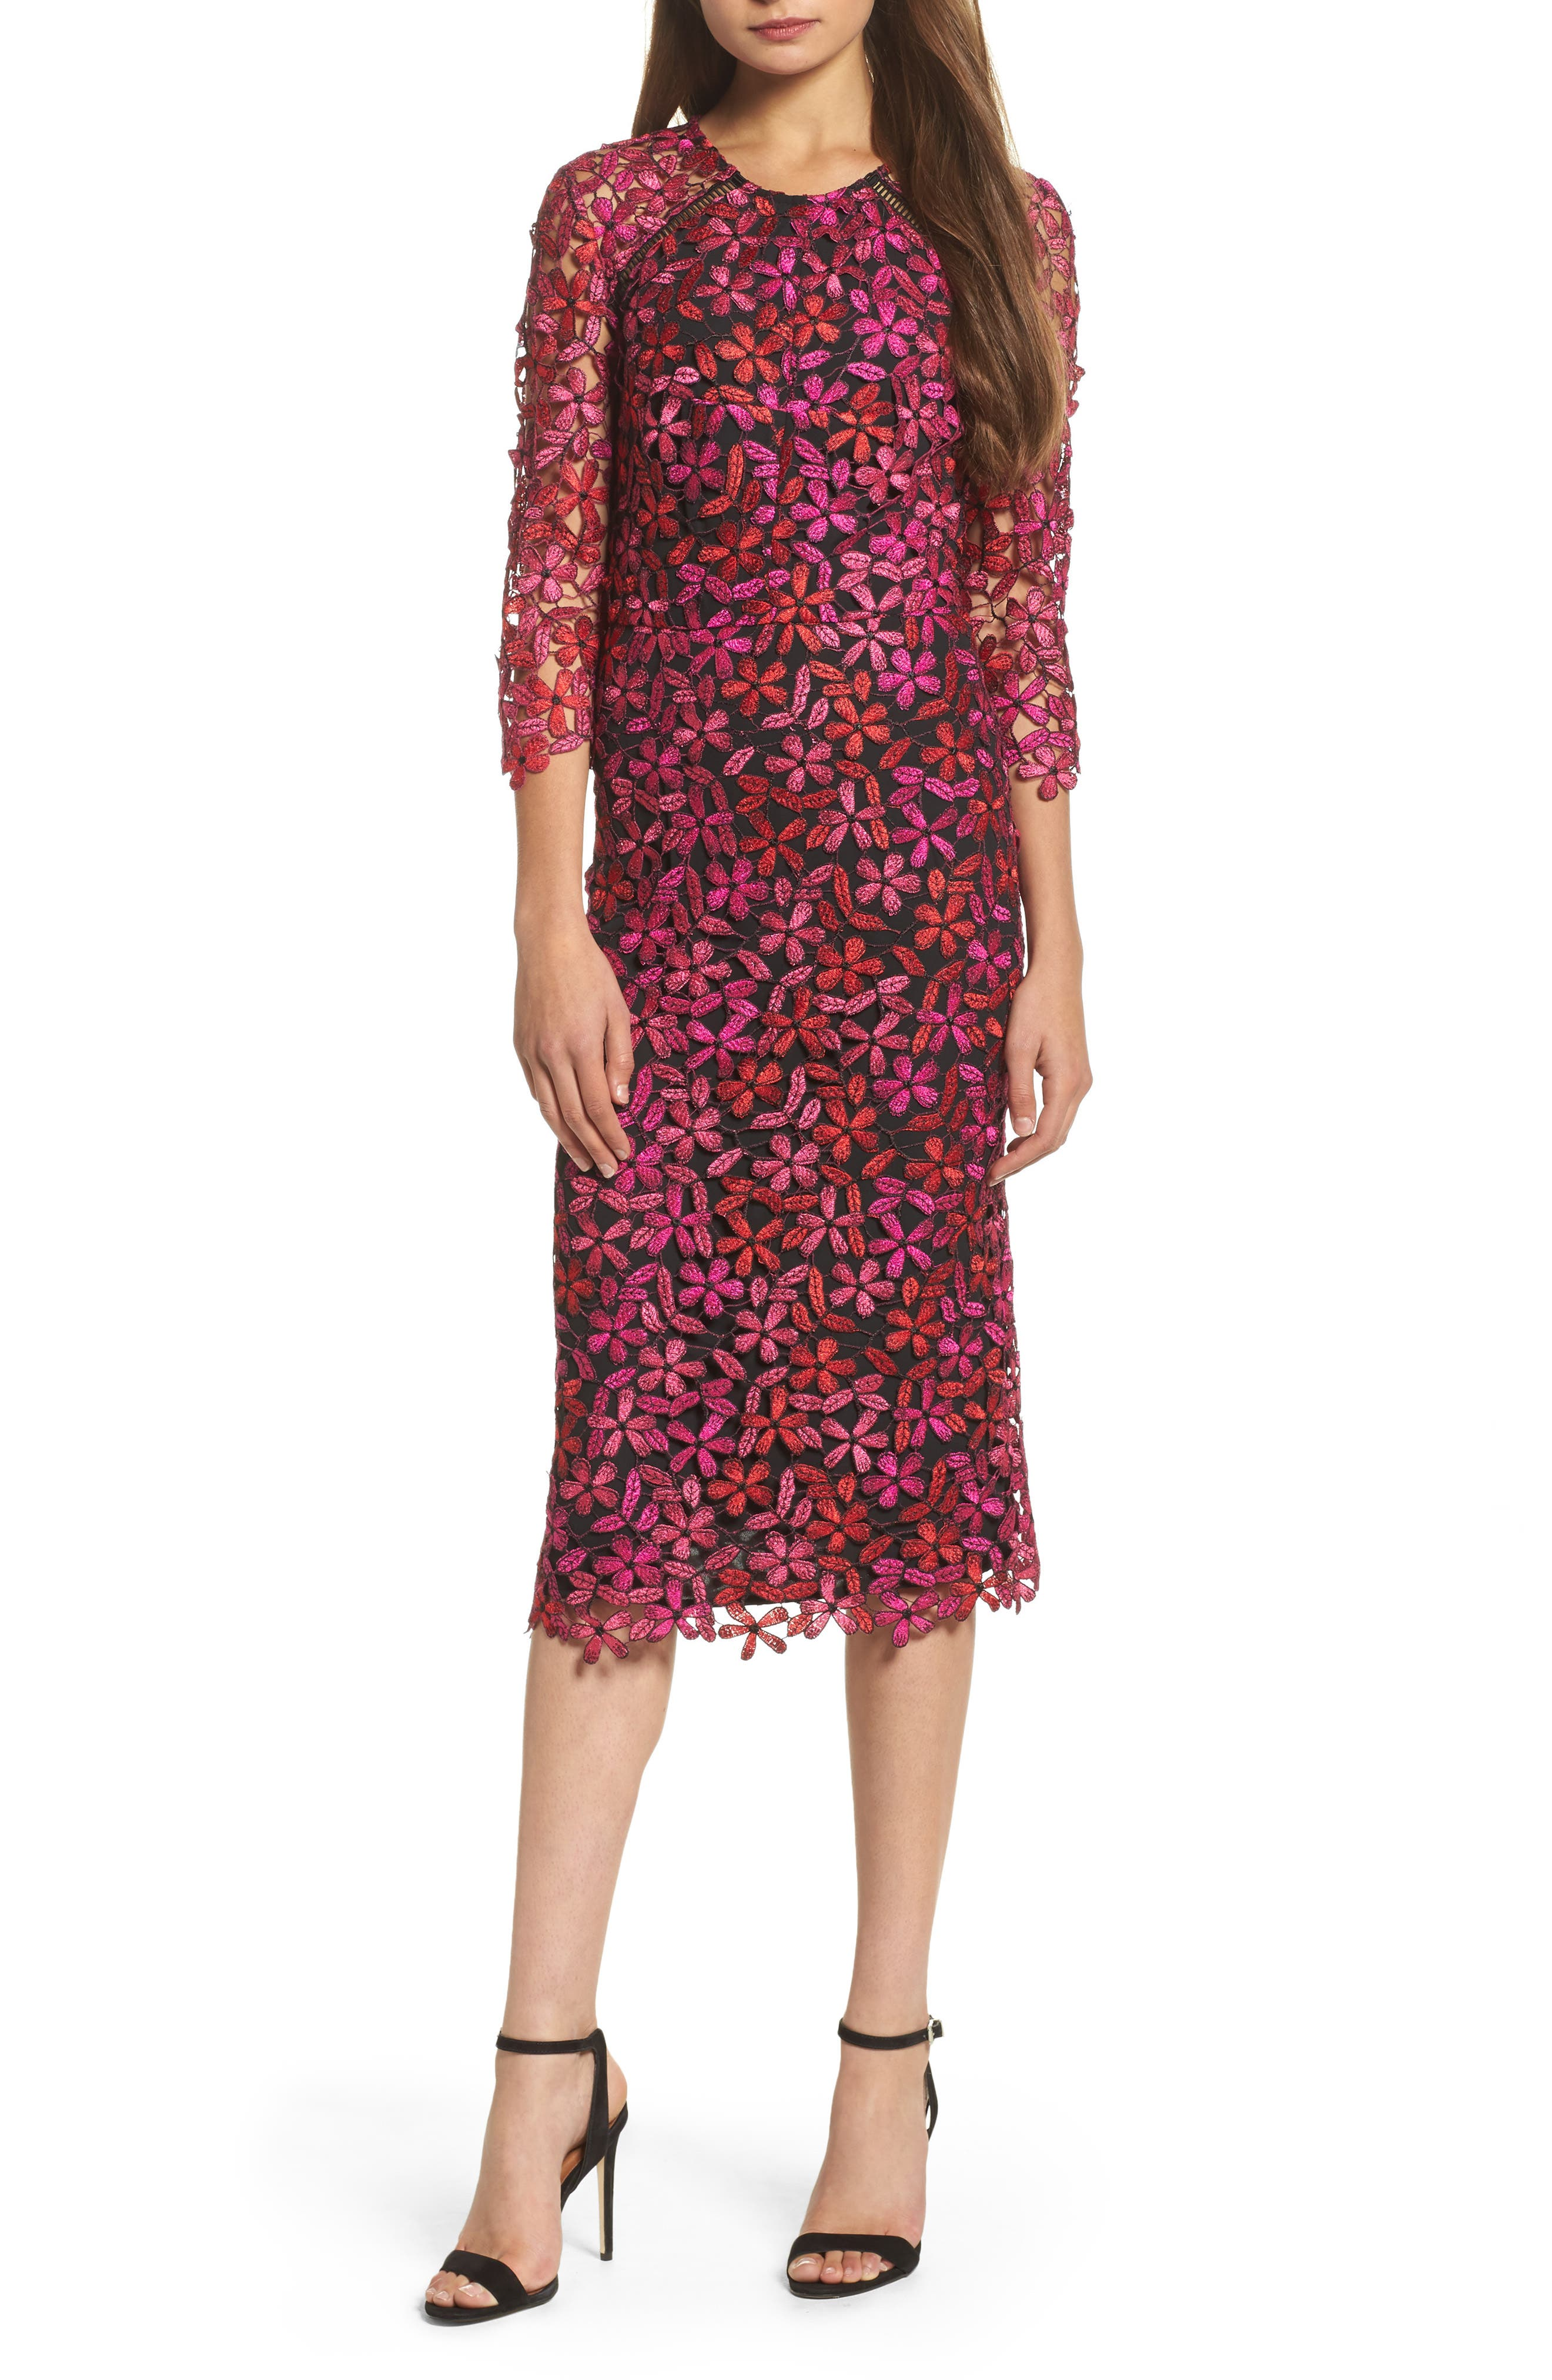 Alternate Image 1 Selected - Shoshanna Floral Lace Sheath Dress